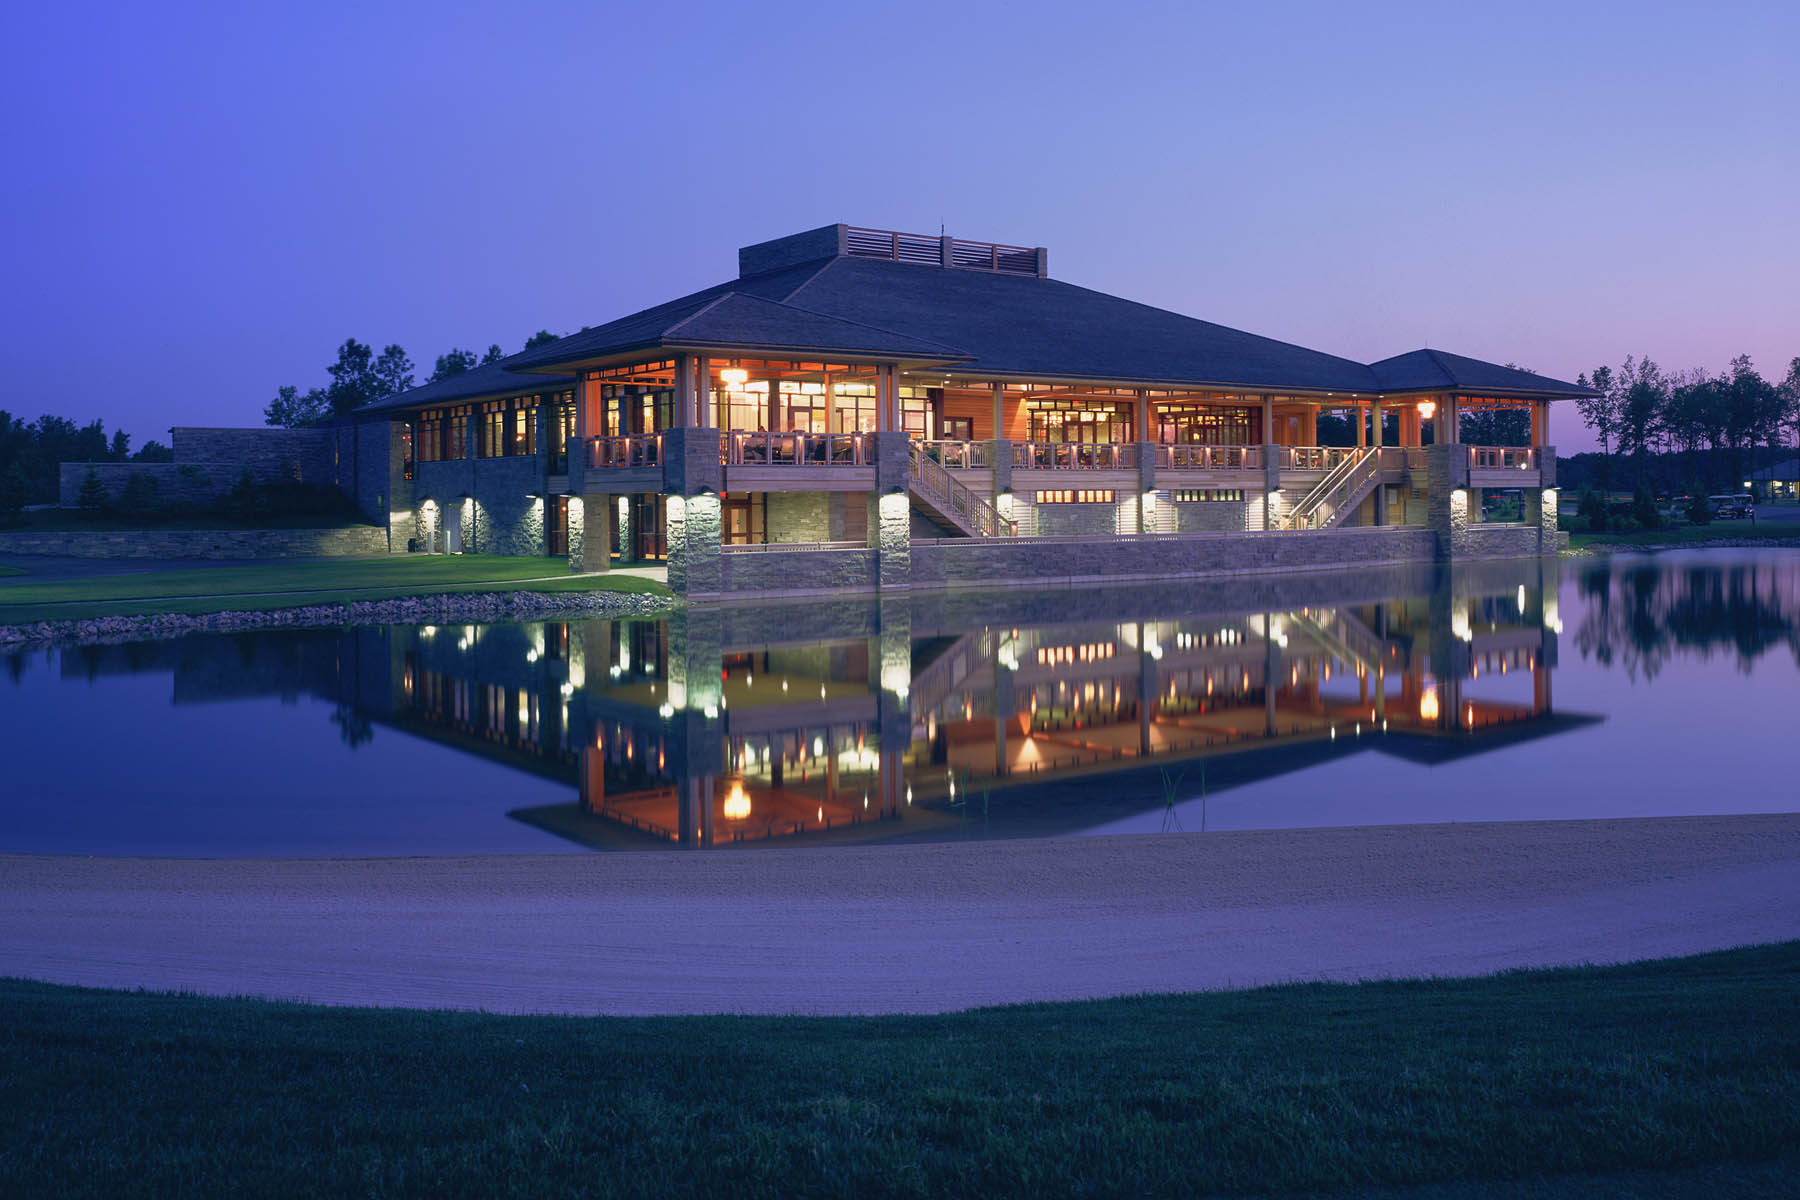 View from illuminated clubhouse on pond with building reflection in water at dusk